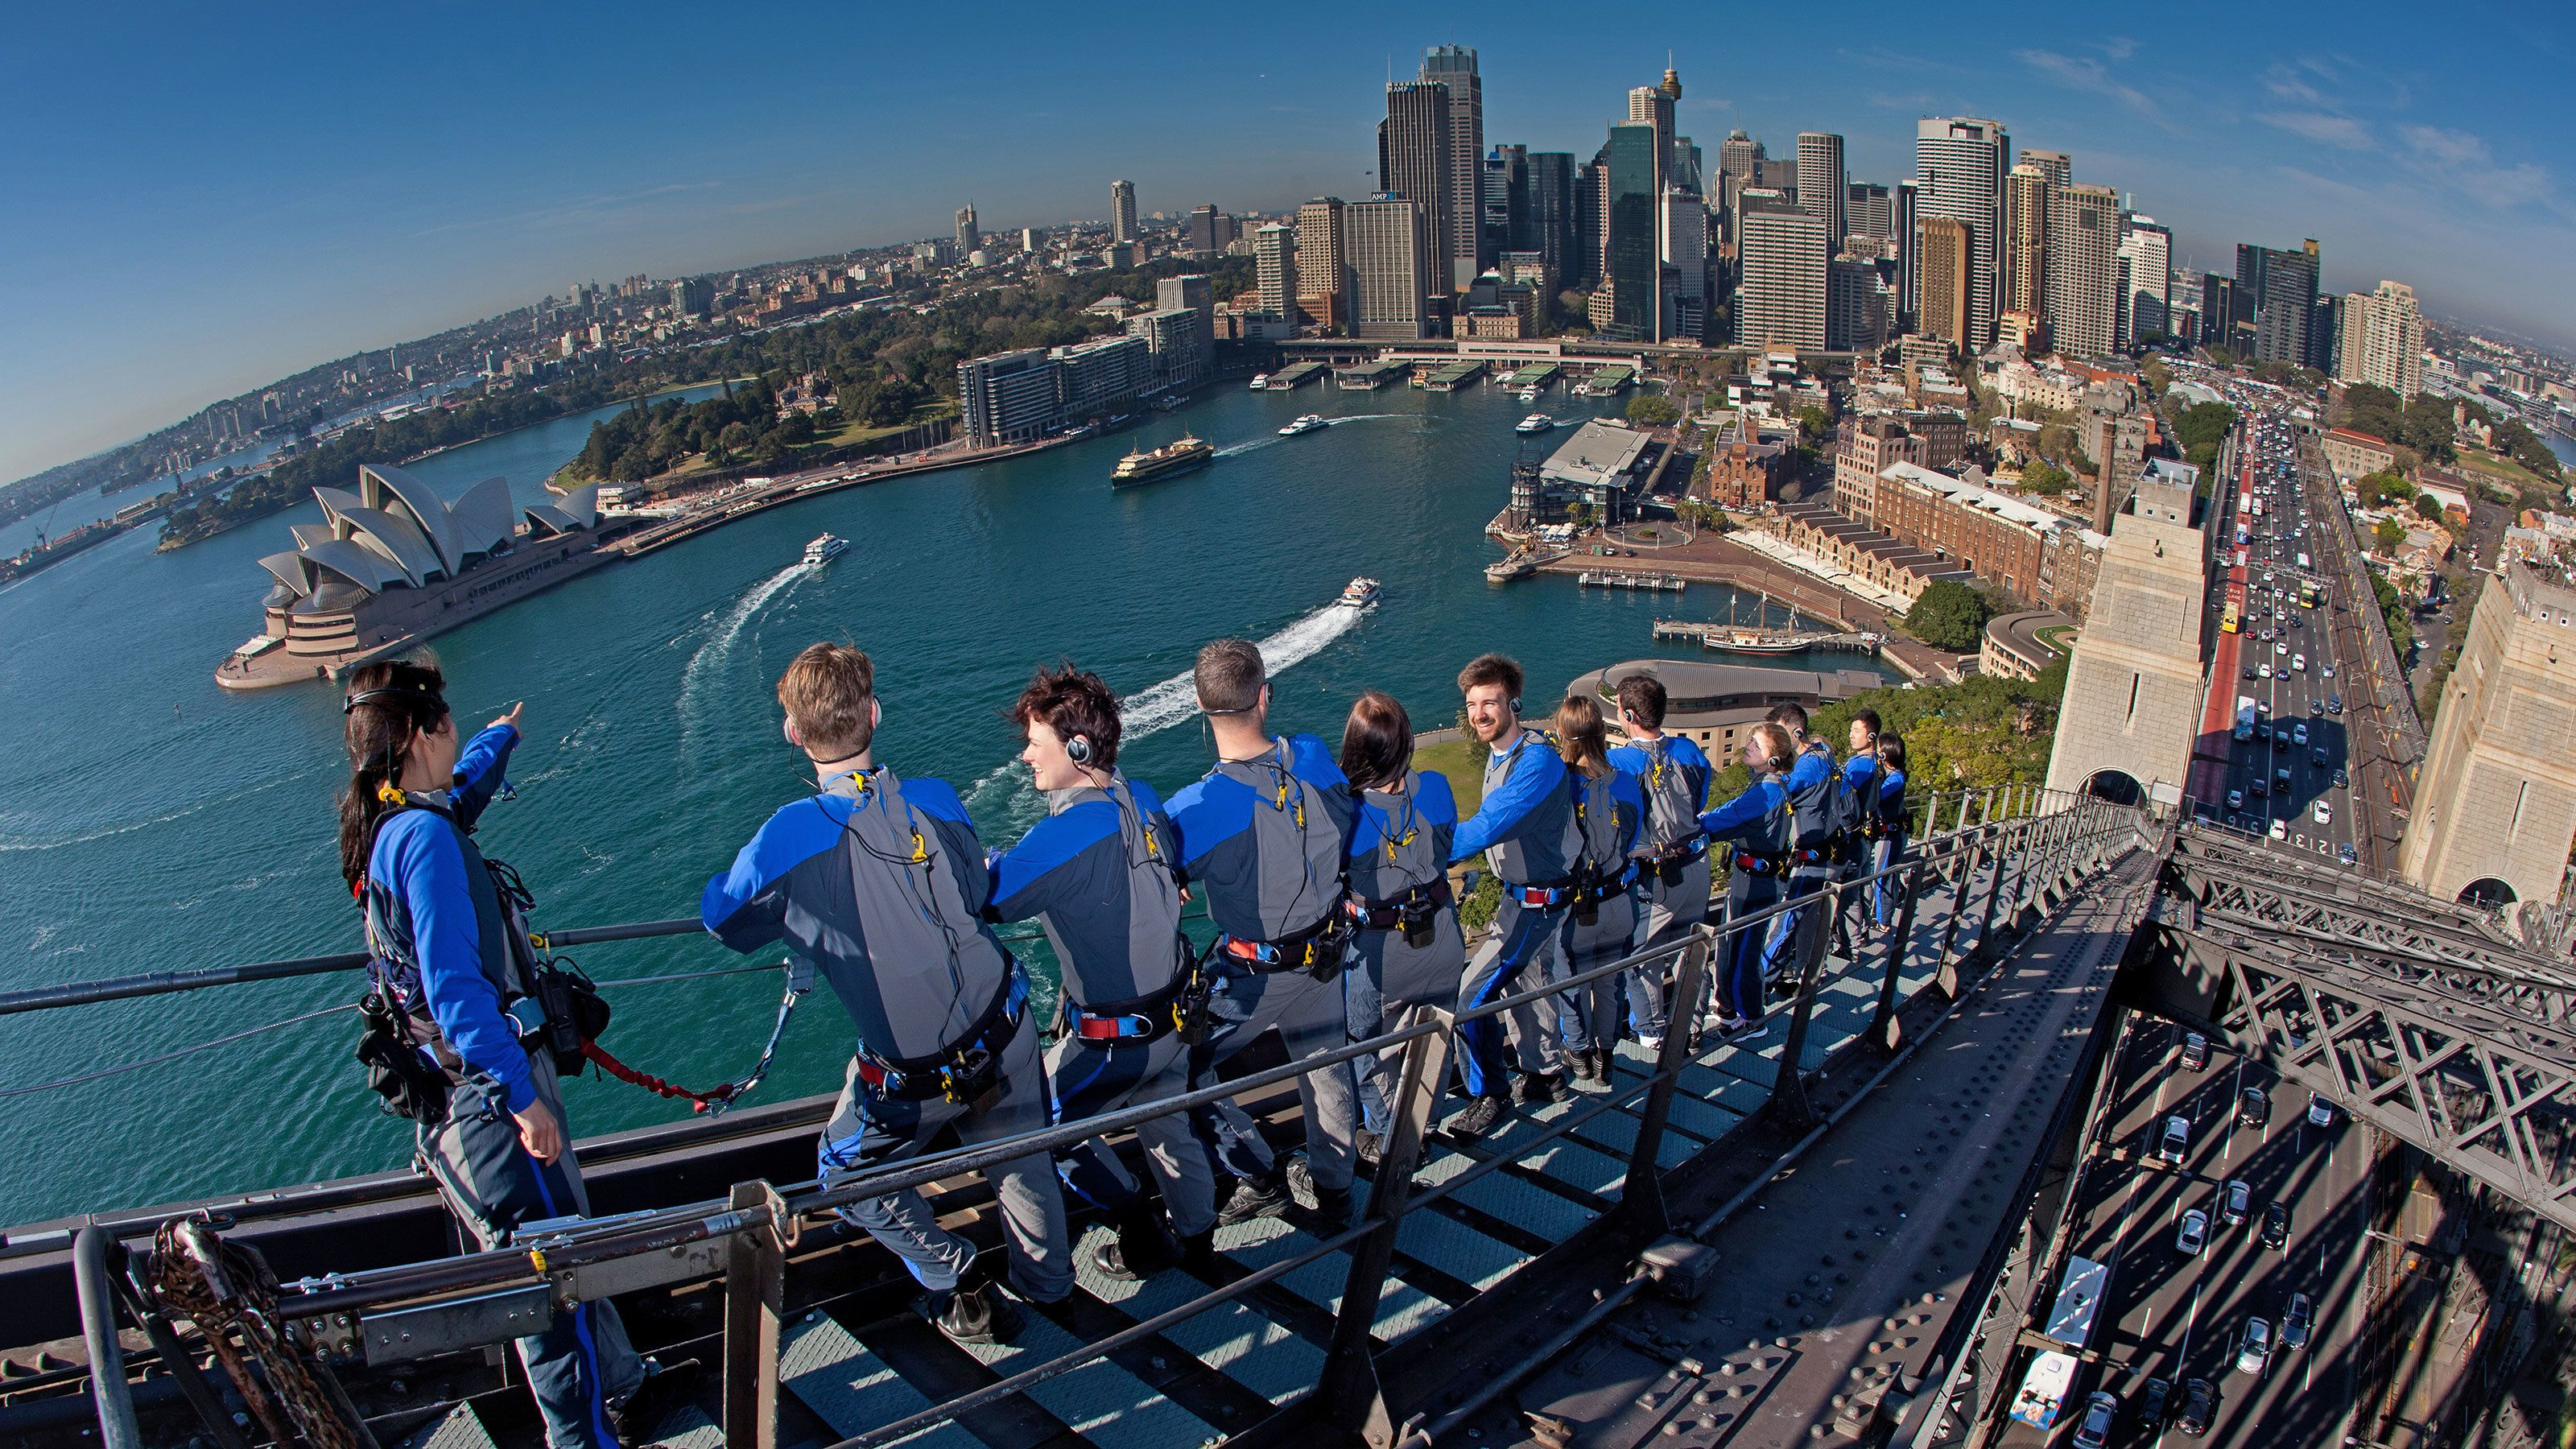 BridgeClimb Experience at Sydney Harbour Bridge